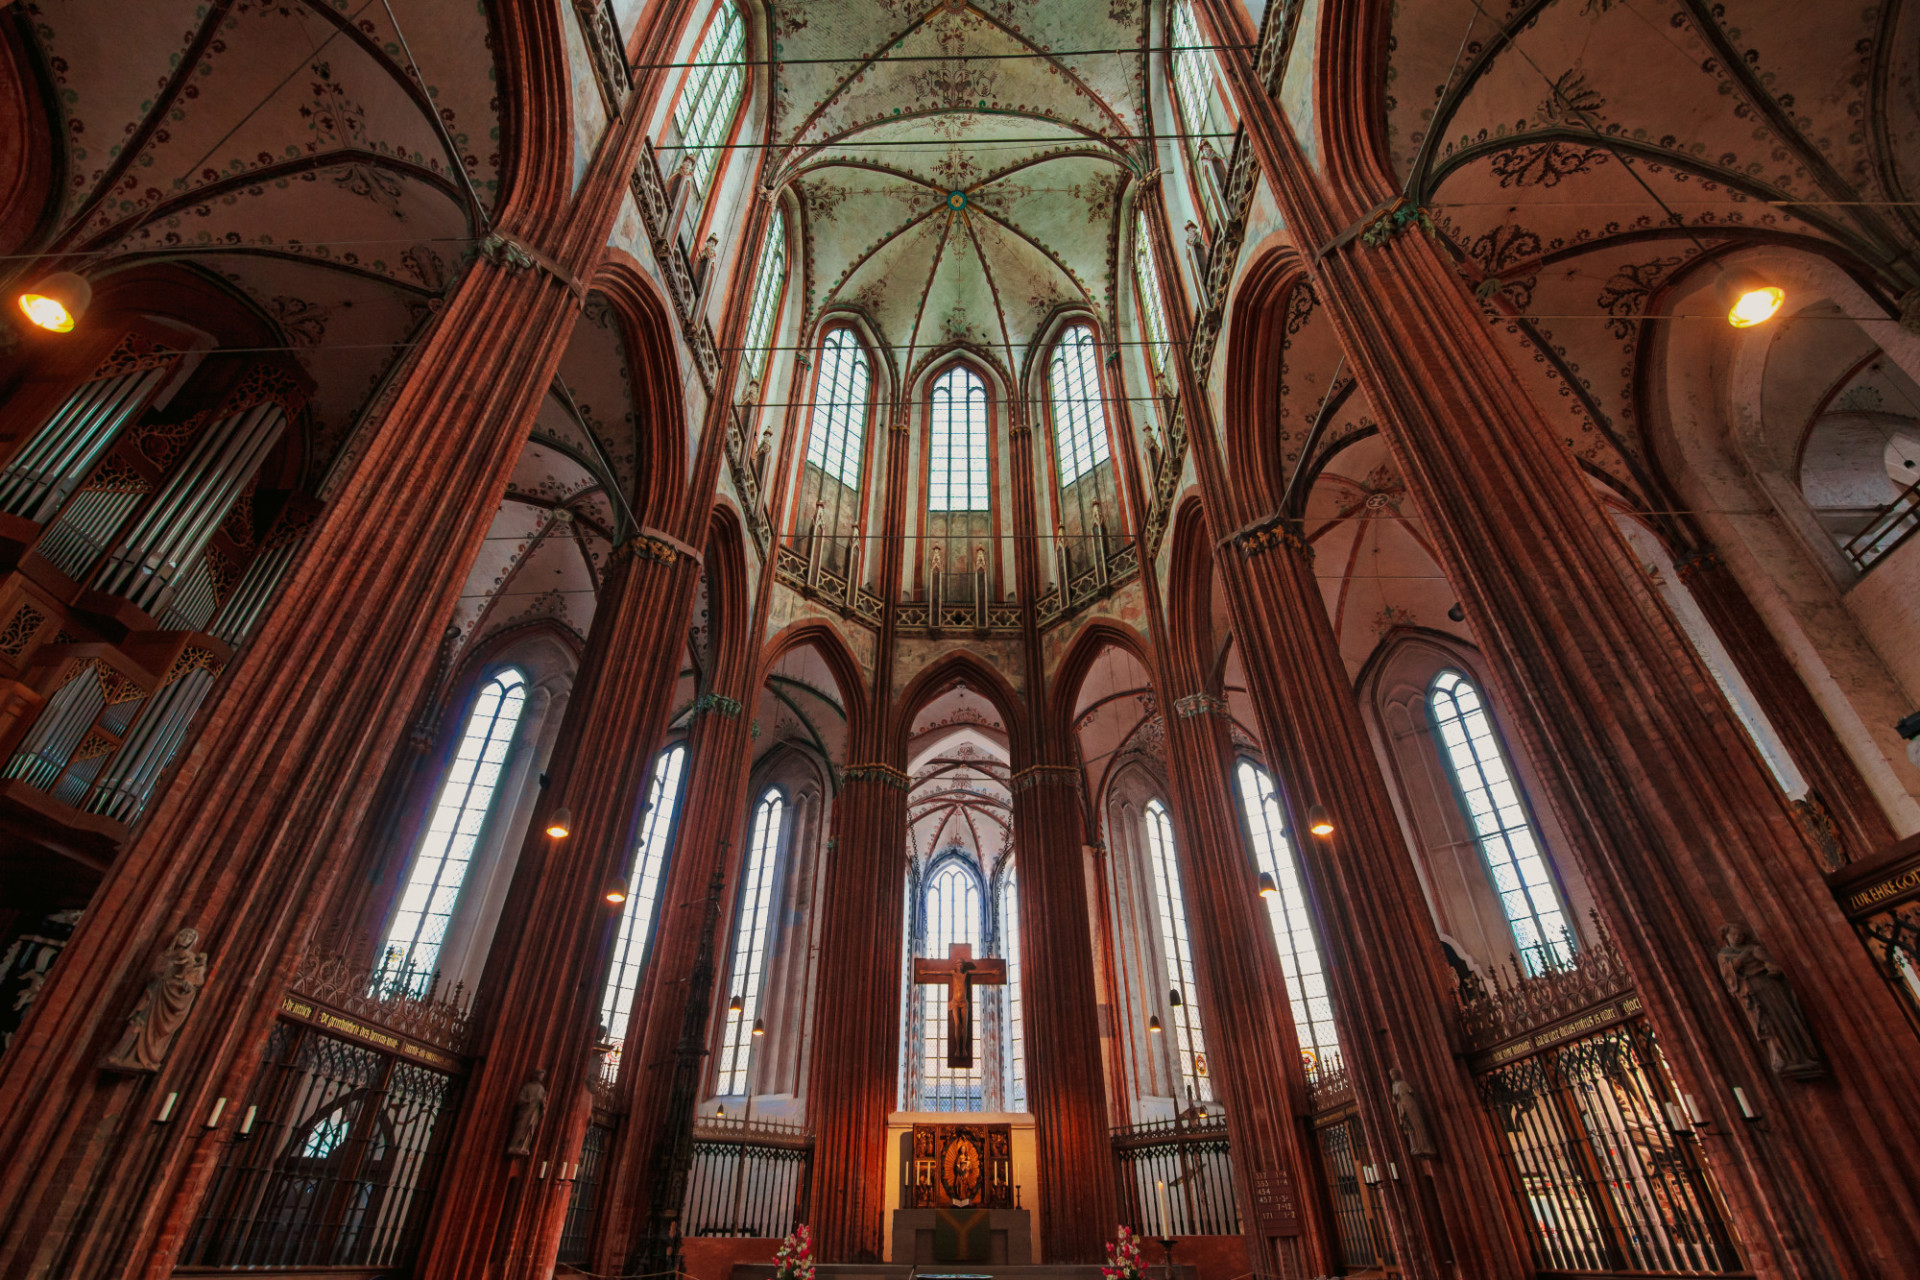 St. Mary's church at Lübeck, Schleswig-Holstein, Germany